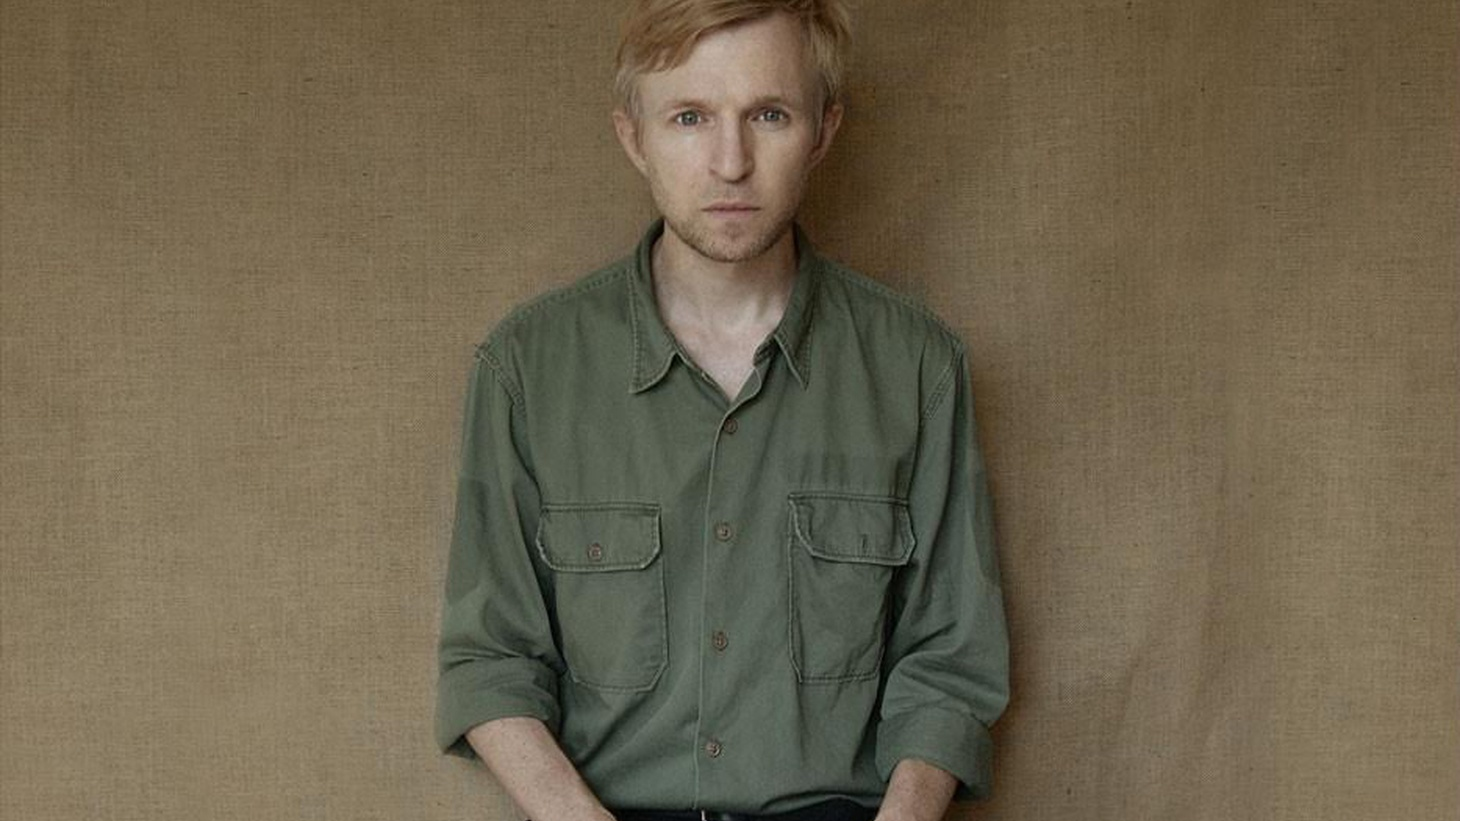 Somewhere between Chet Baker and Portishead we find Jay-Jay Johanson.